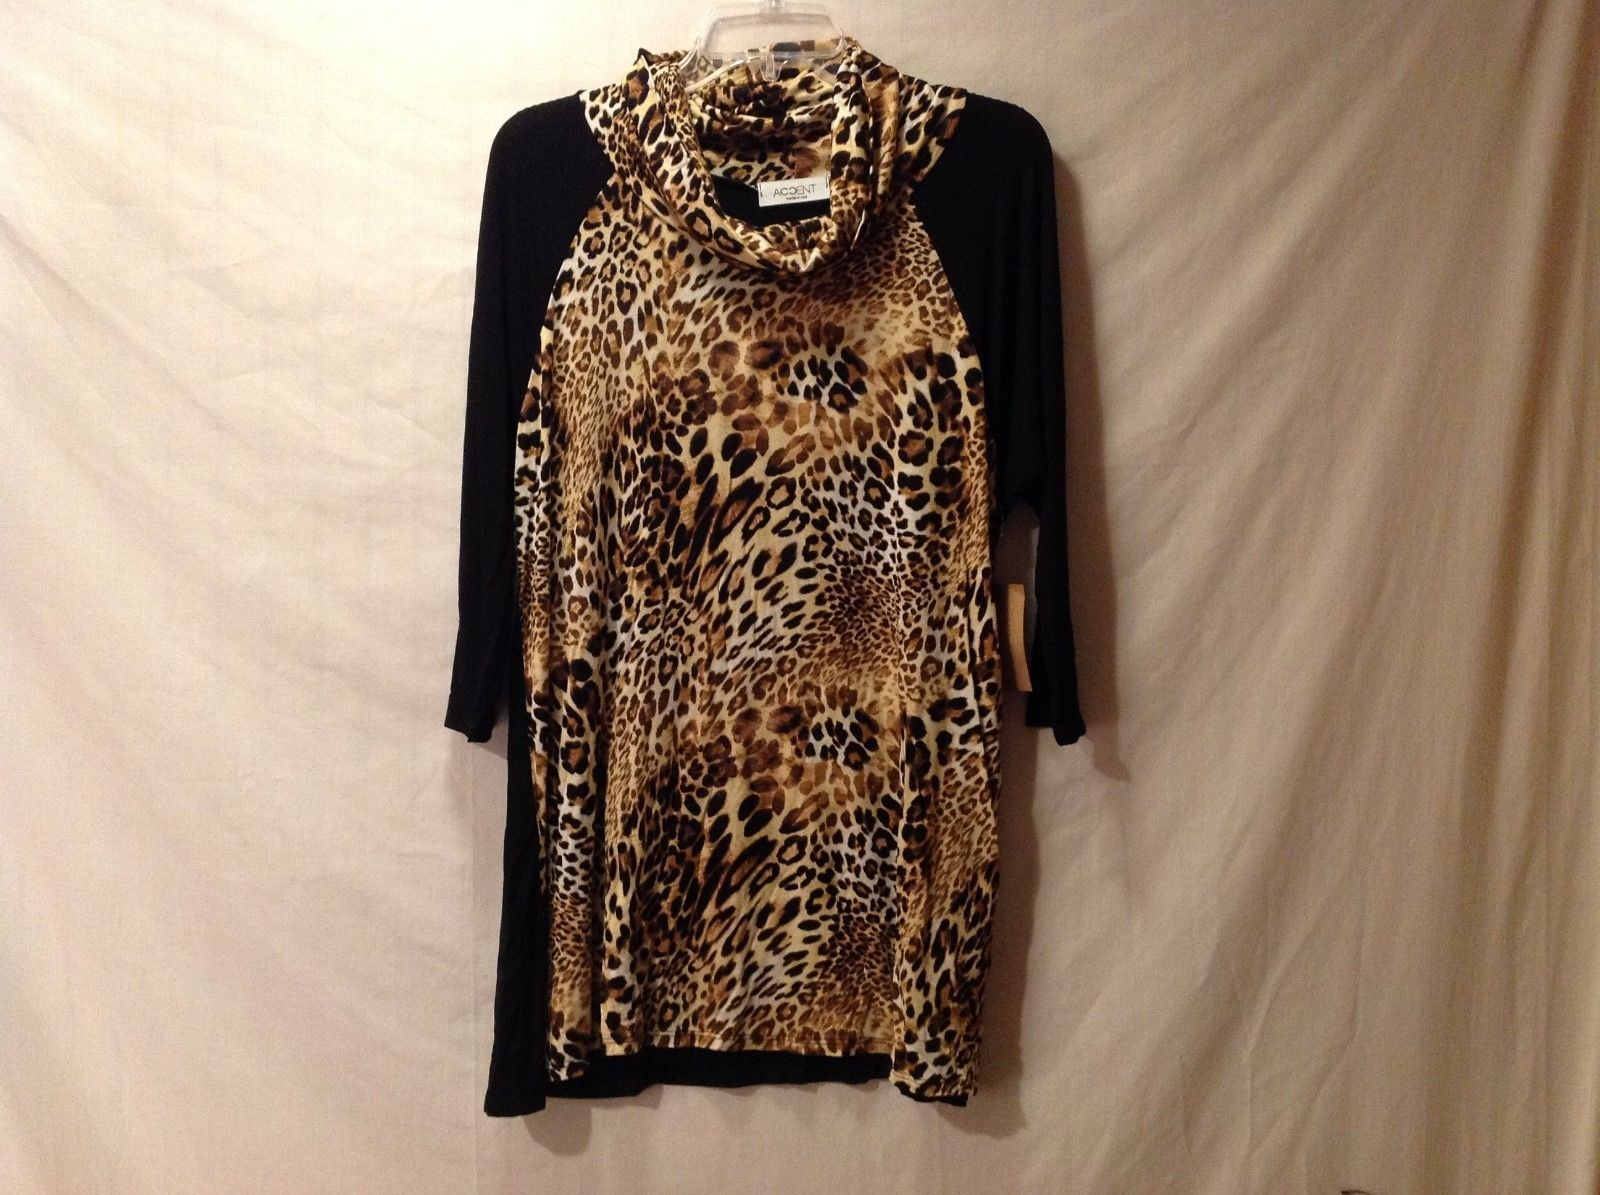 Women's Accent Accessories Black w/ Leopard/Cheetah Print Silky Shirt Size S